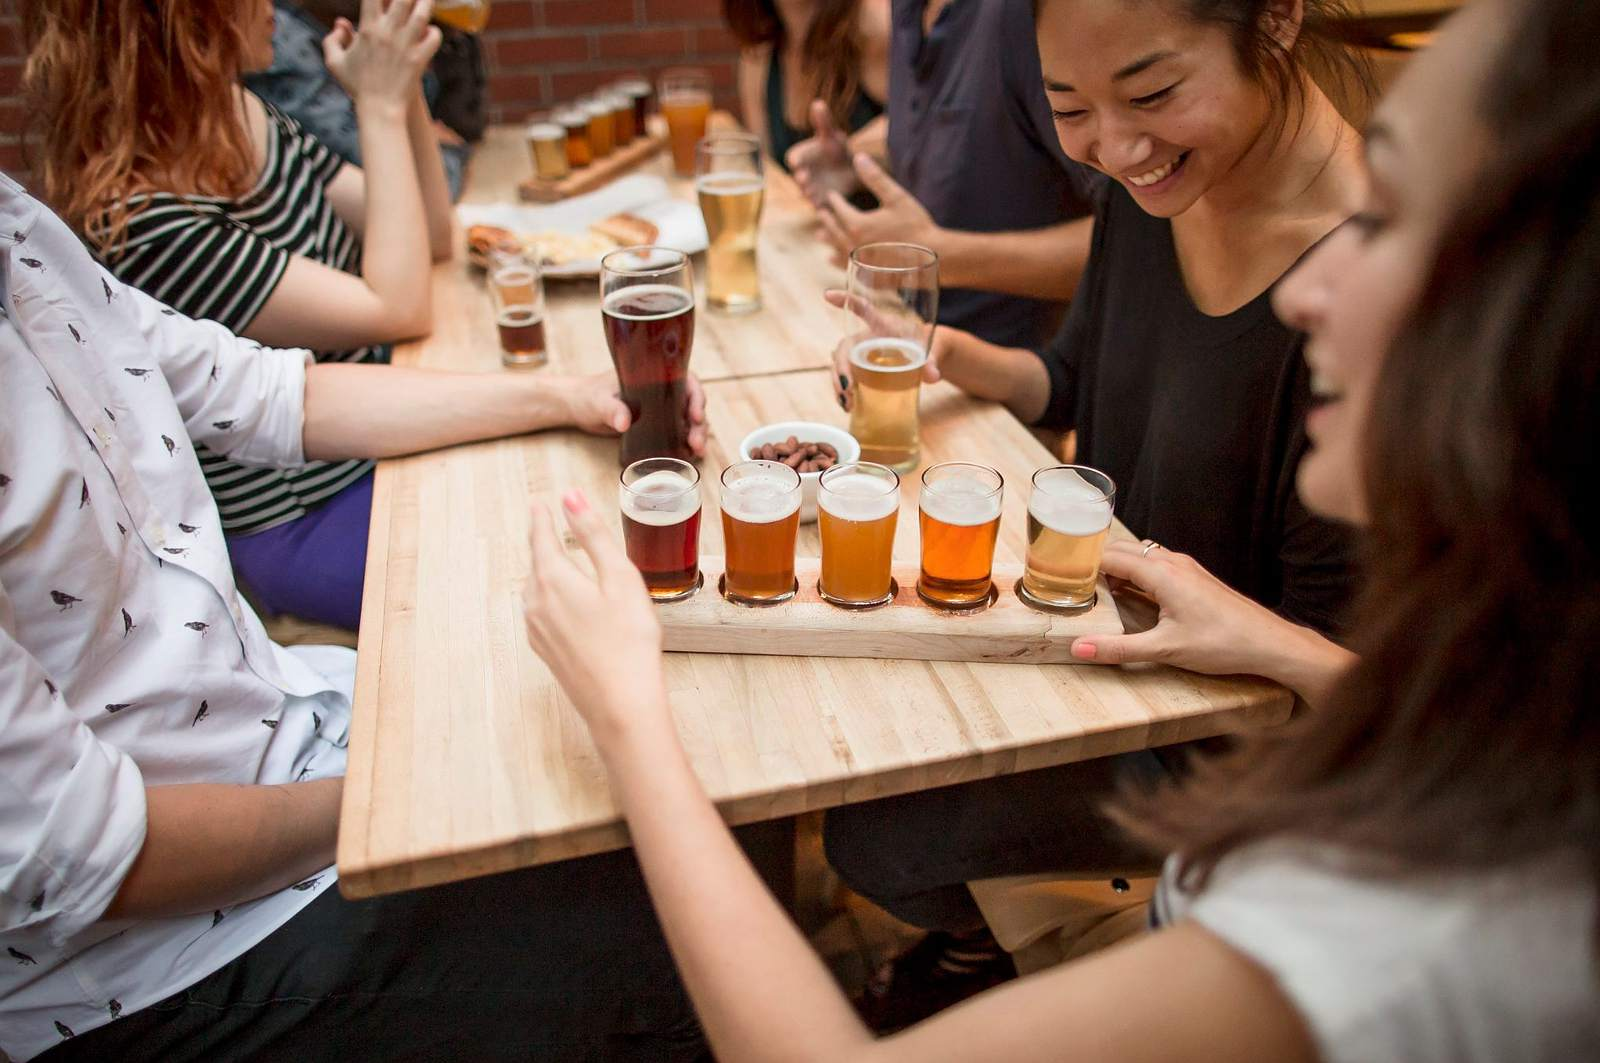 Montreal's hottest brewpubs include Benelux.